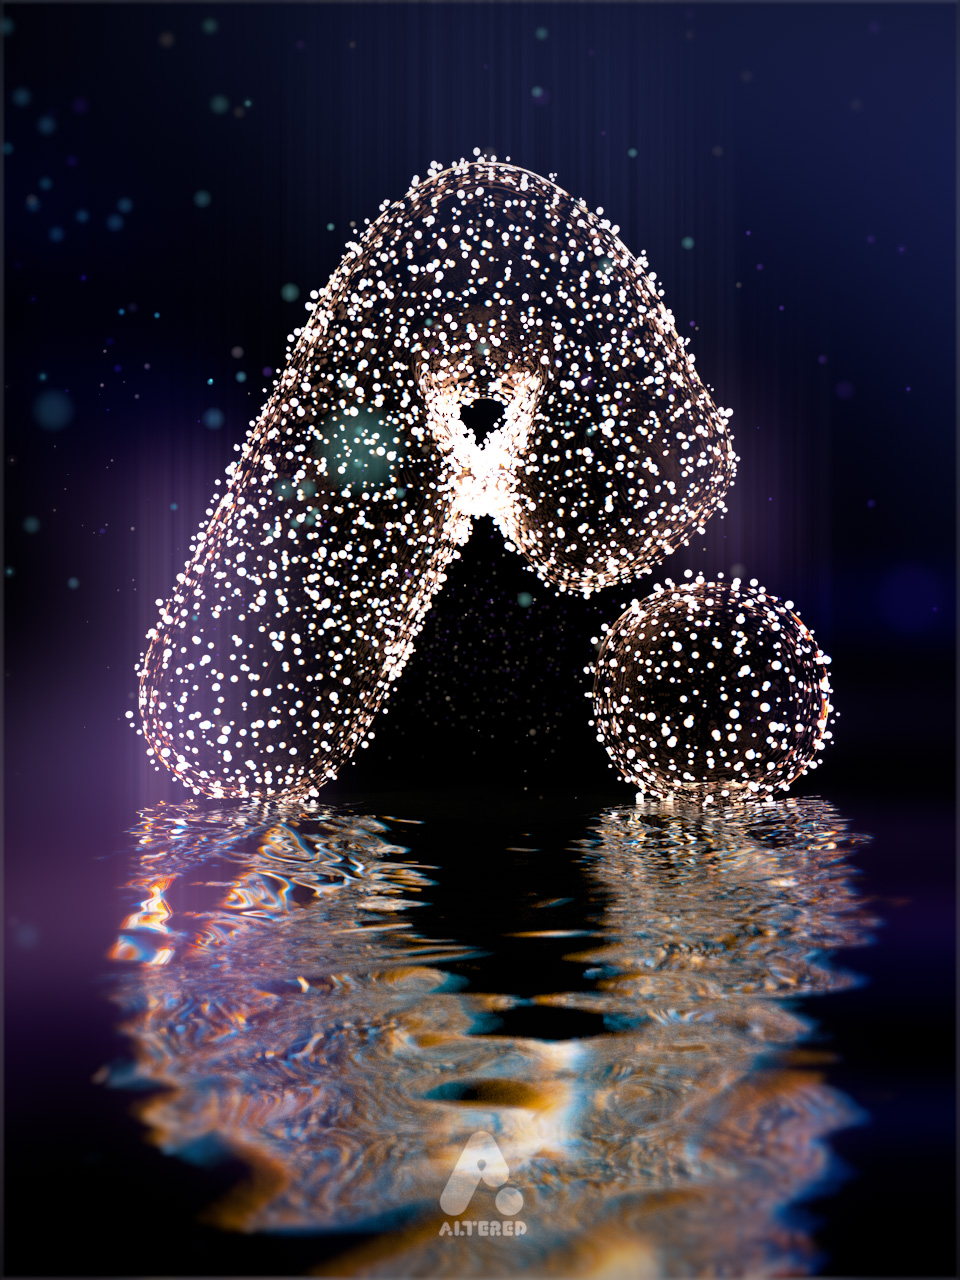 CG, 3D rendered, cinema 4d, lights reflected in water, by lee robinson, freelance motion graphics designer london, altered tv